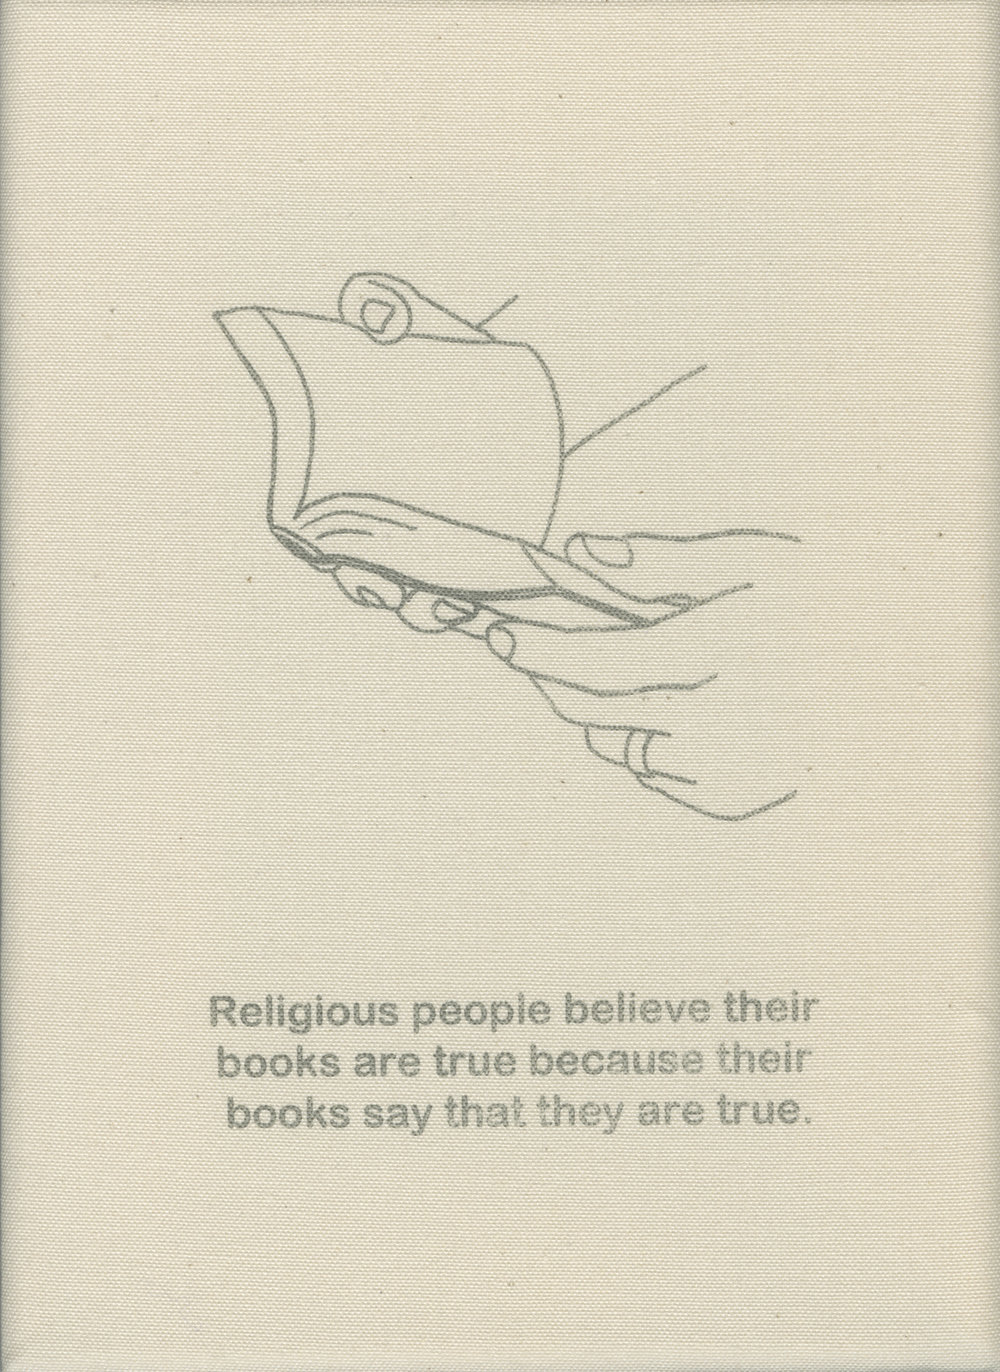 Religious people believe their books are true because their books say that they are true.